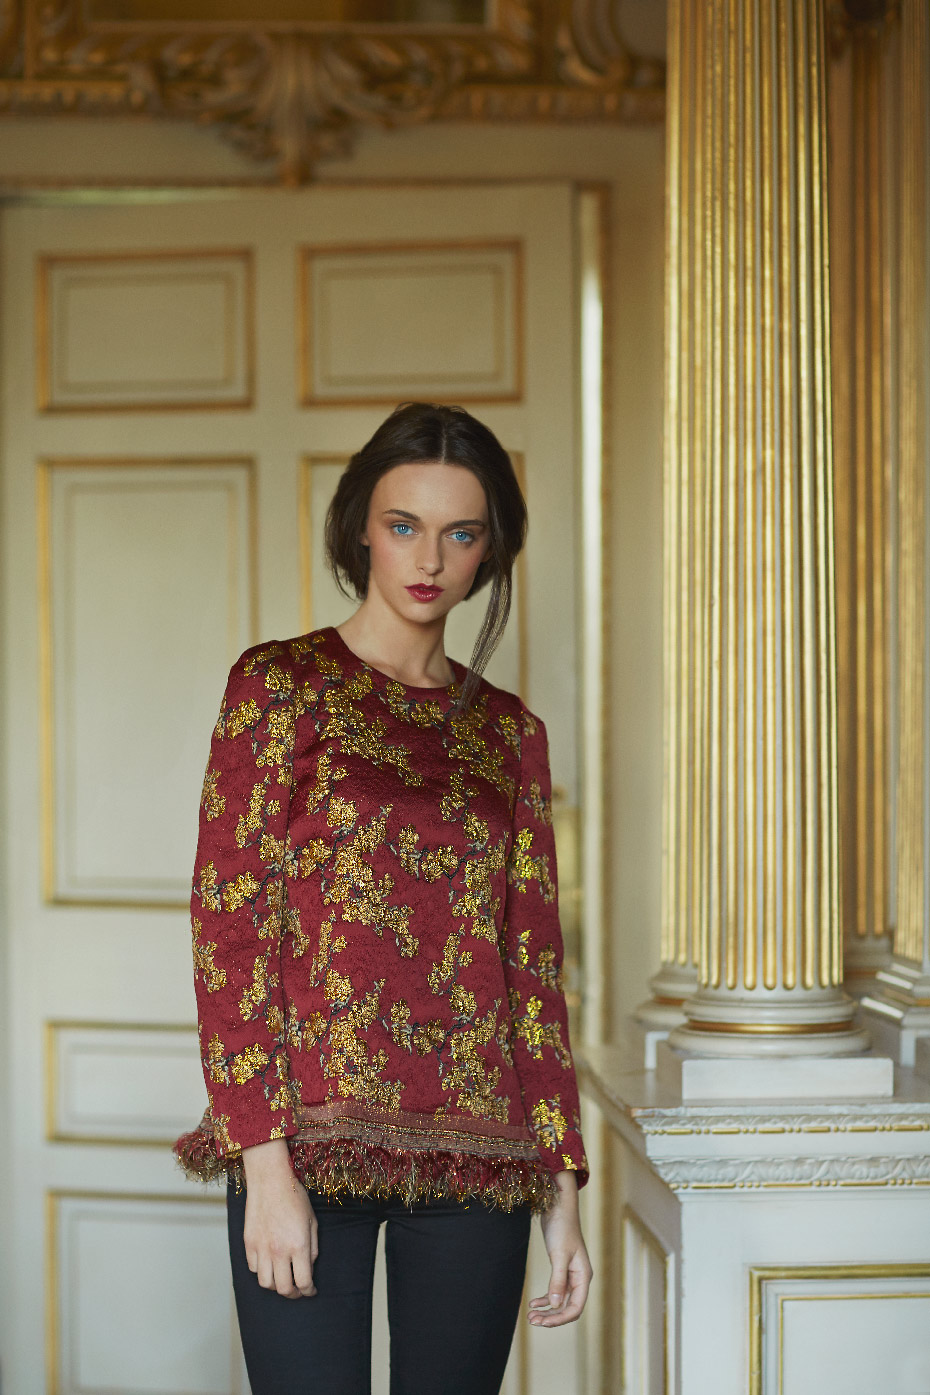 Stacey Van Berkel Photography I Fashion shoot in Gold Room with Red + Gold embroidered top I Carton House I Kildare, Ireland